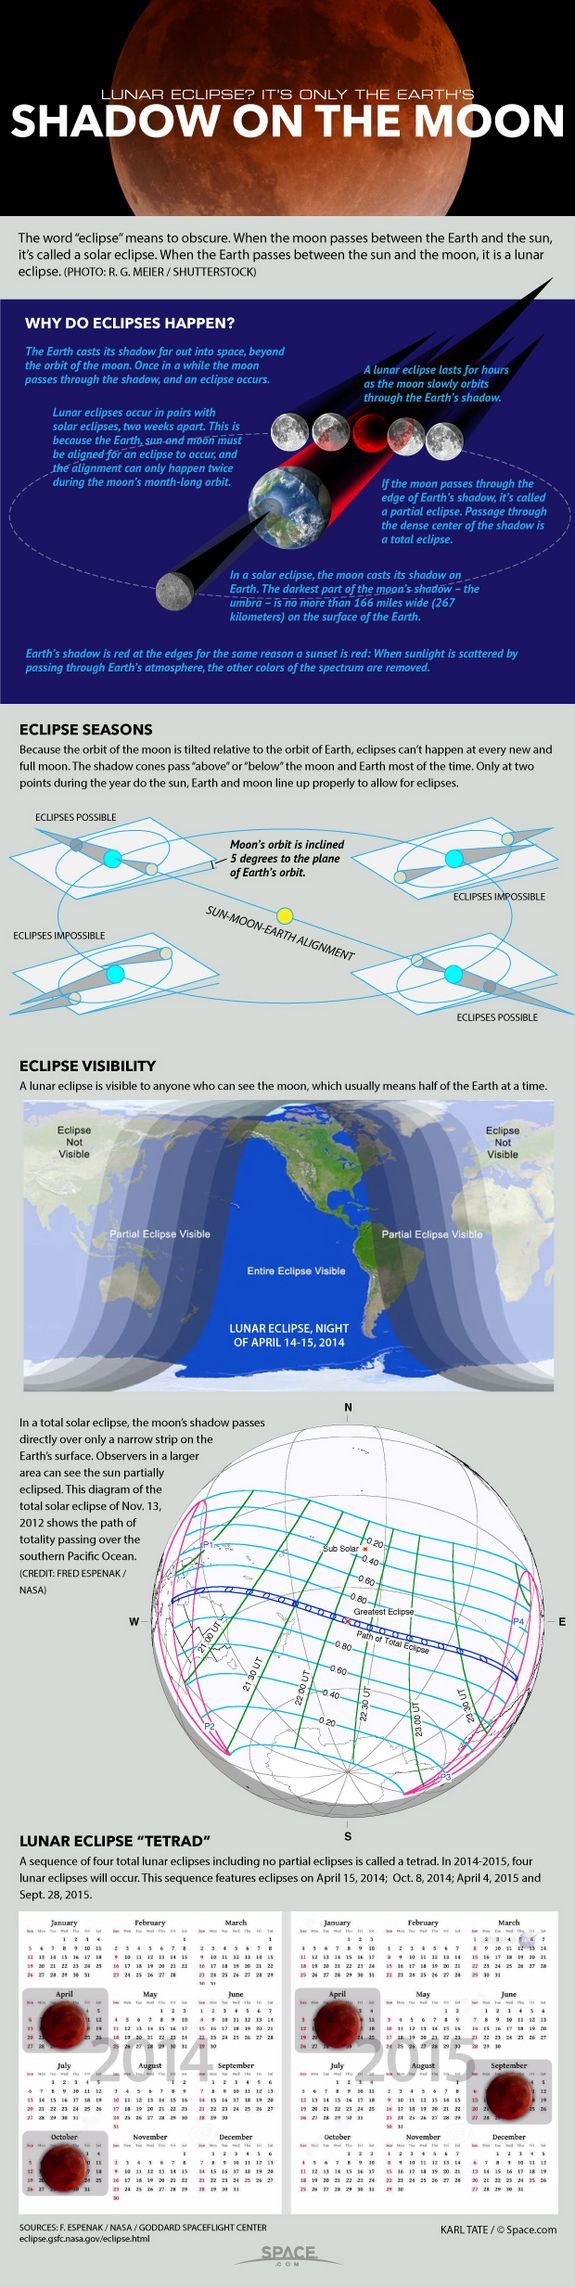 'Blood Moons' Explained: What Causes a Lunar Eclipse Tetrad?  [by Space -- via #tipsographic]. More at tipsographic.com